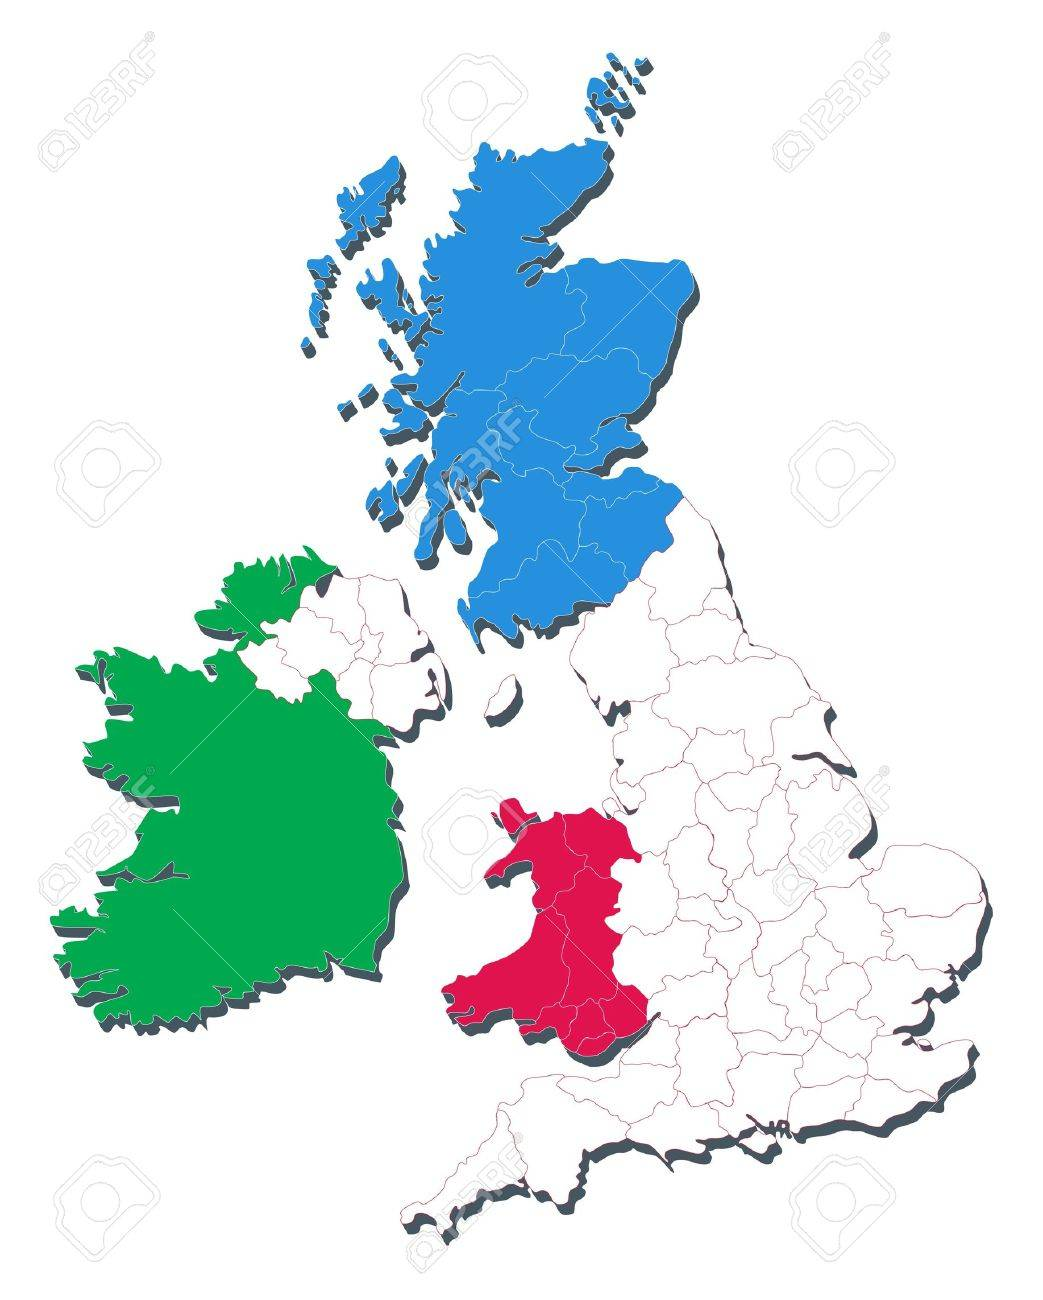 Map of united kingdom including countries and counties royalty free map of united kingdom including countries and counties stock vector 9319973 gumiabroncs